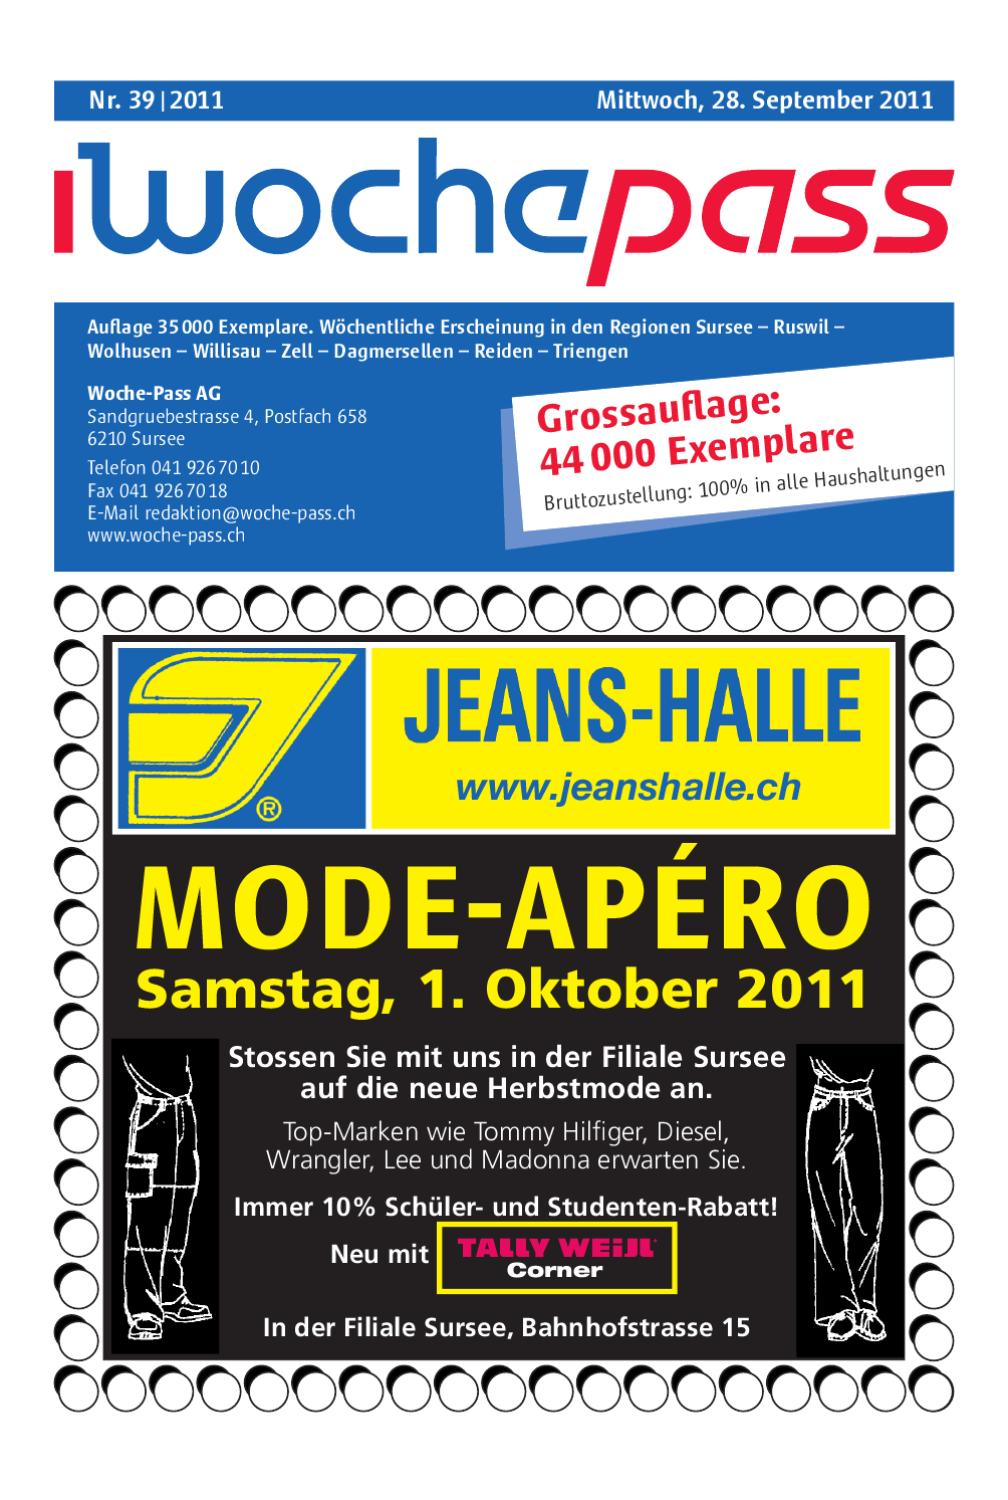 Woche-Pass | KW39 | 28. September 2011 by Woche-Pass AG - issuu